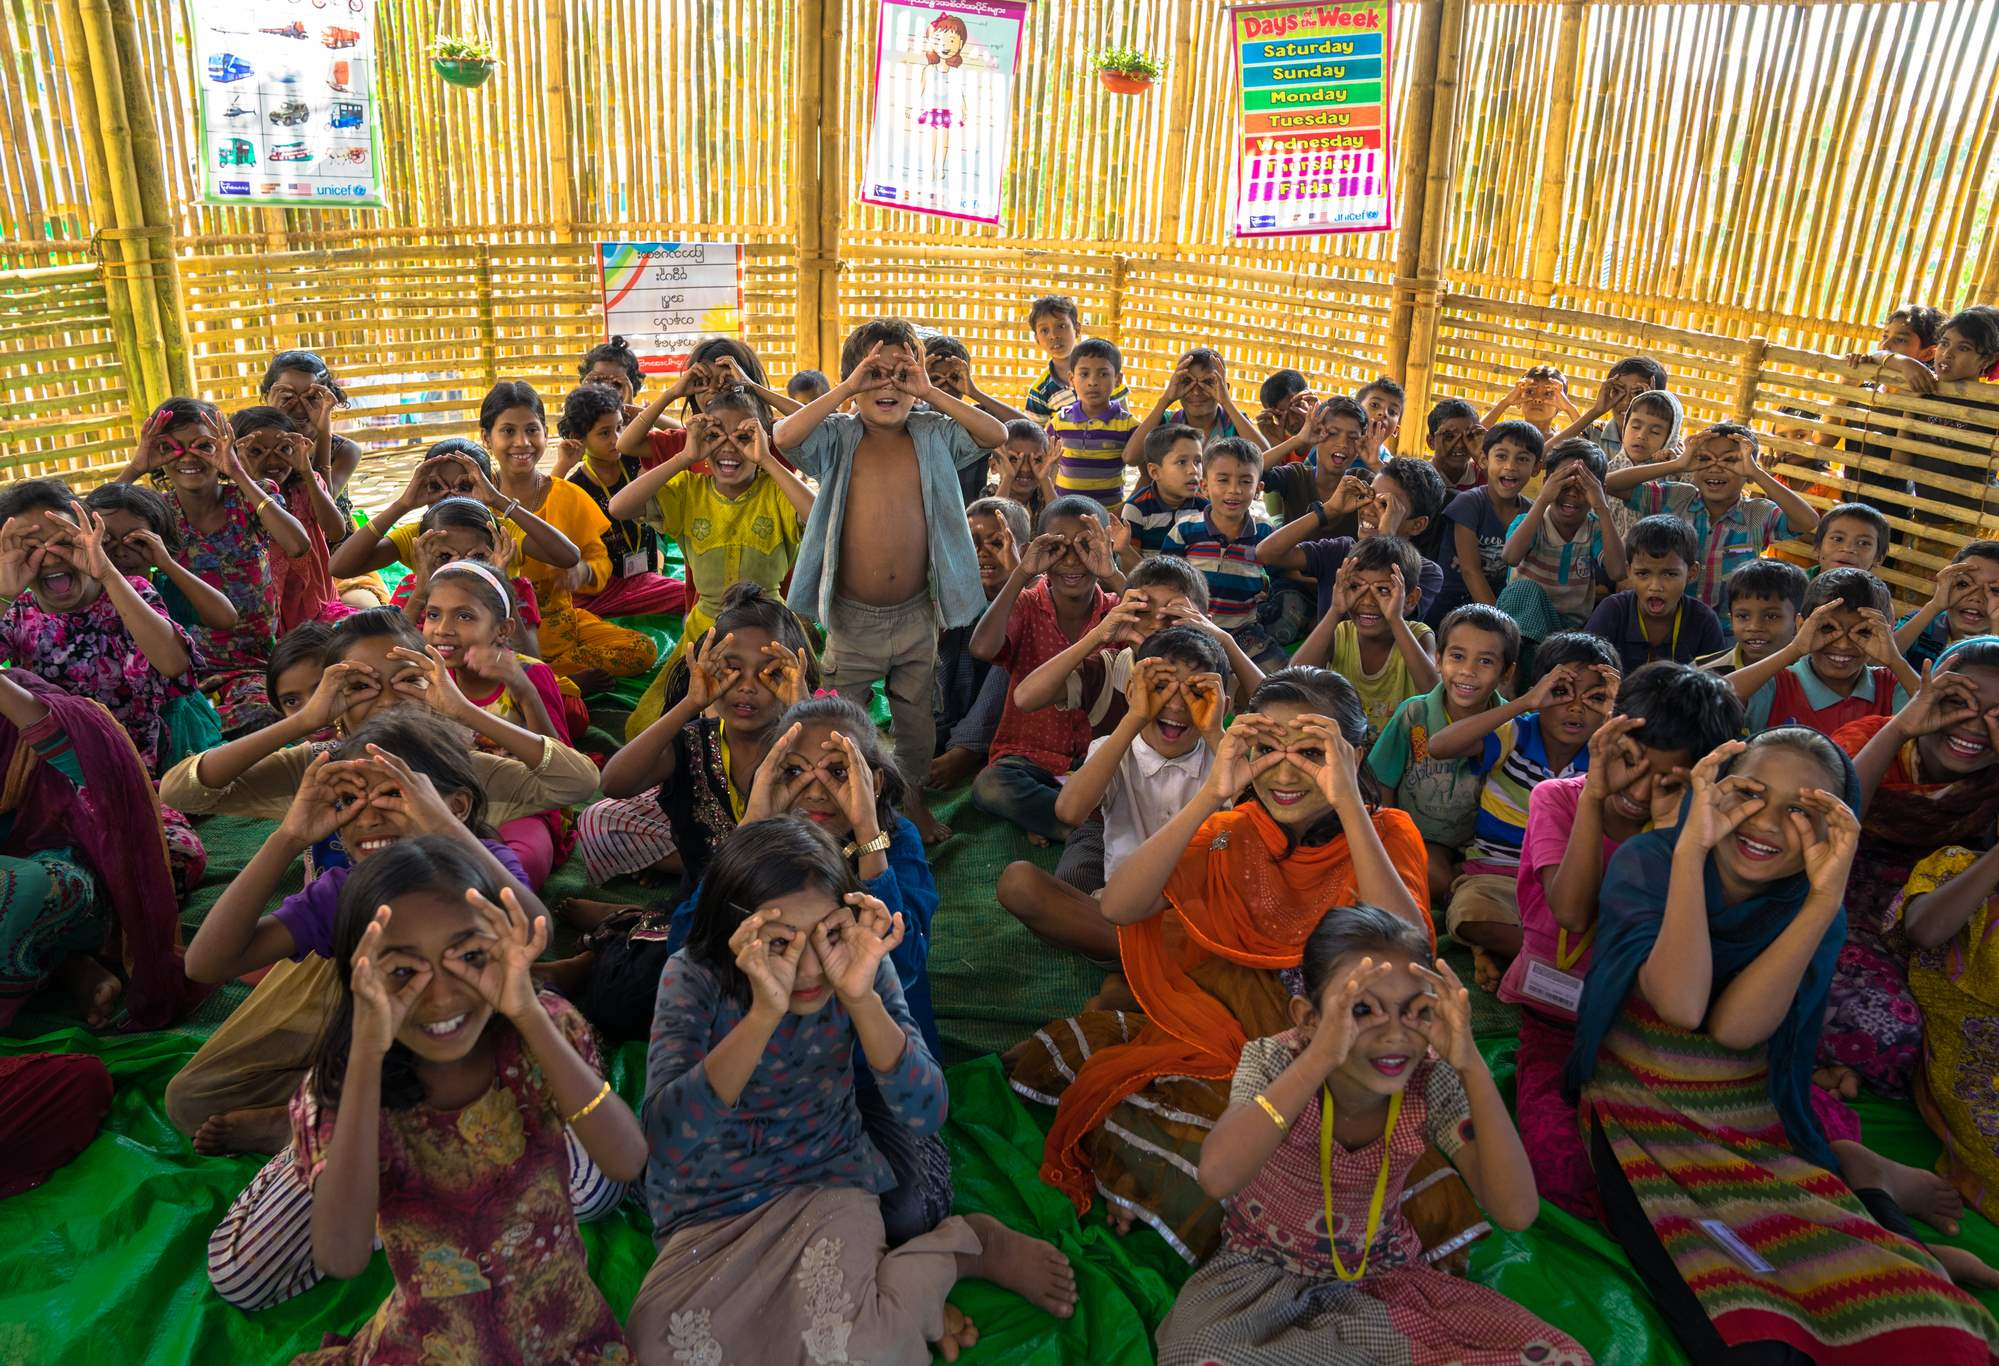 Rohingya children enjoy playing and learning in a refugee camp in Bangladesh. Photo: Arif Zaman.